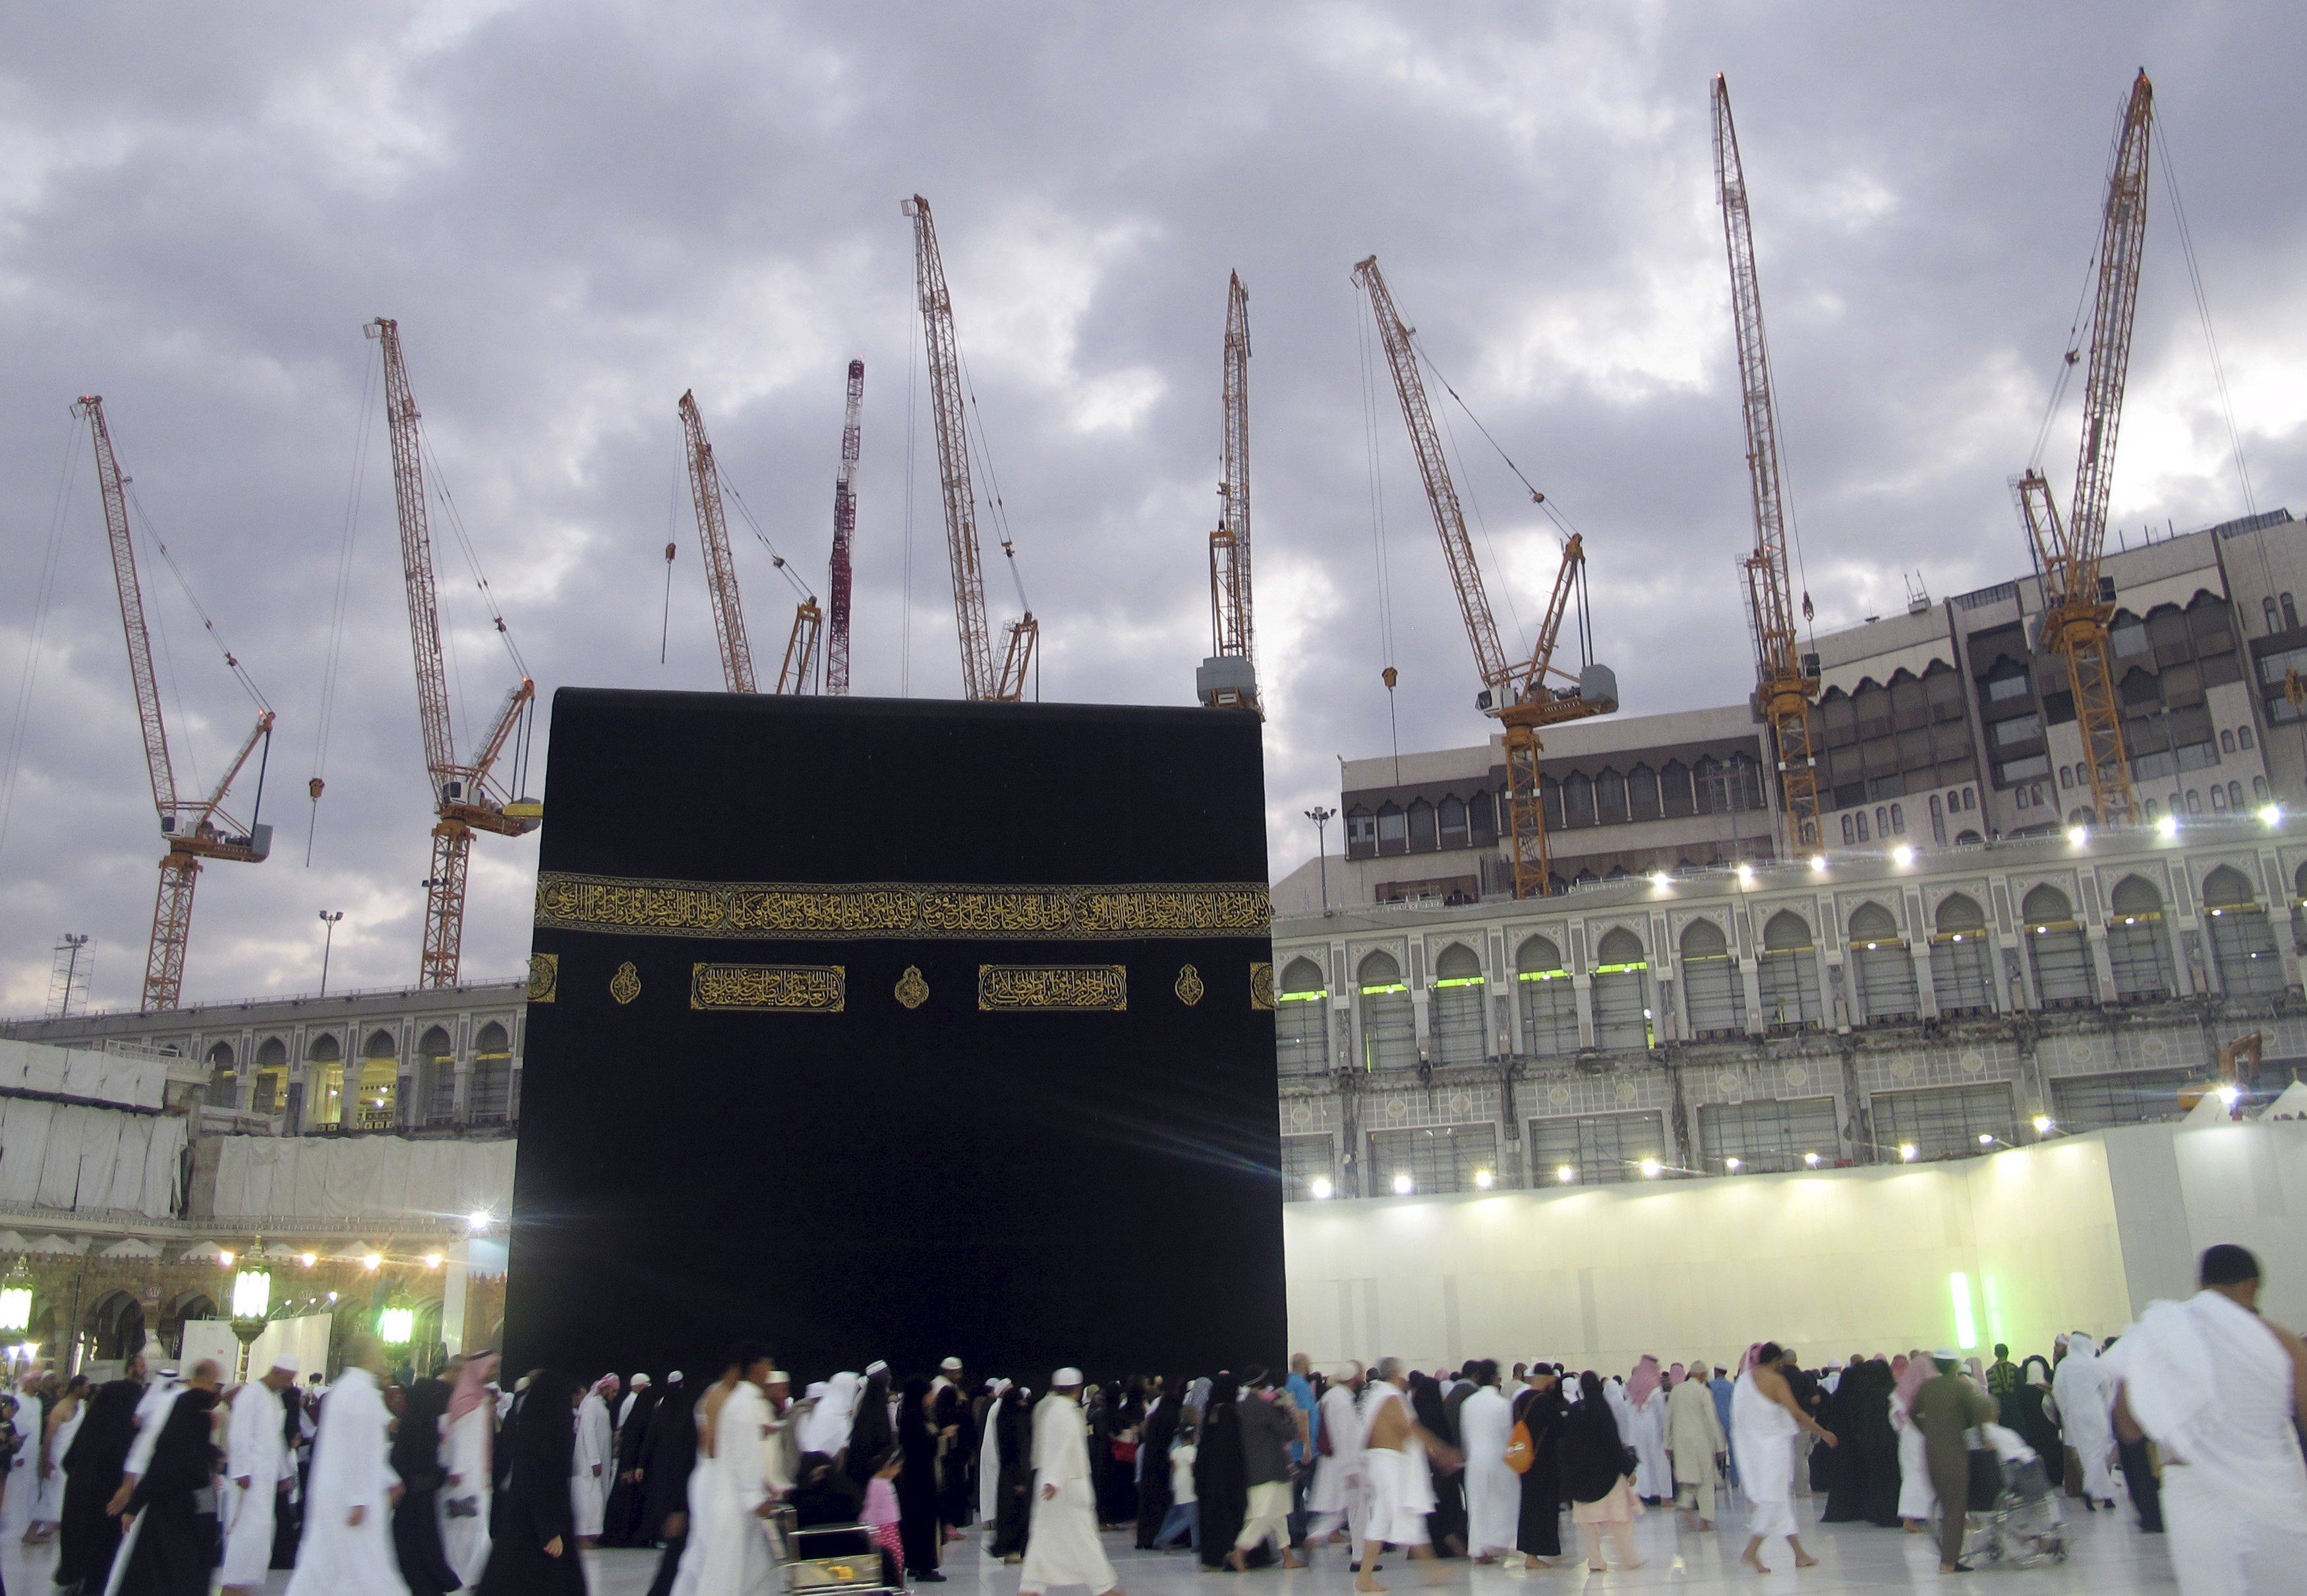 Construction cranes surround the Grand Mosque. One crane crashed into the mosque on September 11, 2015, killing more than 80 people. REUTERS/Amr Abdallah Dalsh/Files